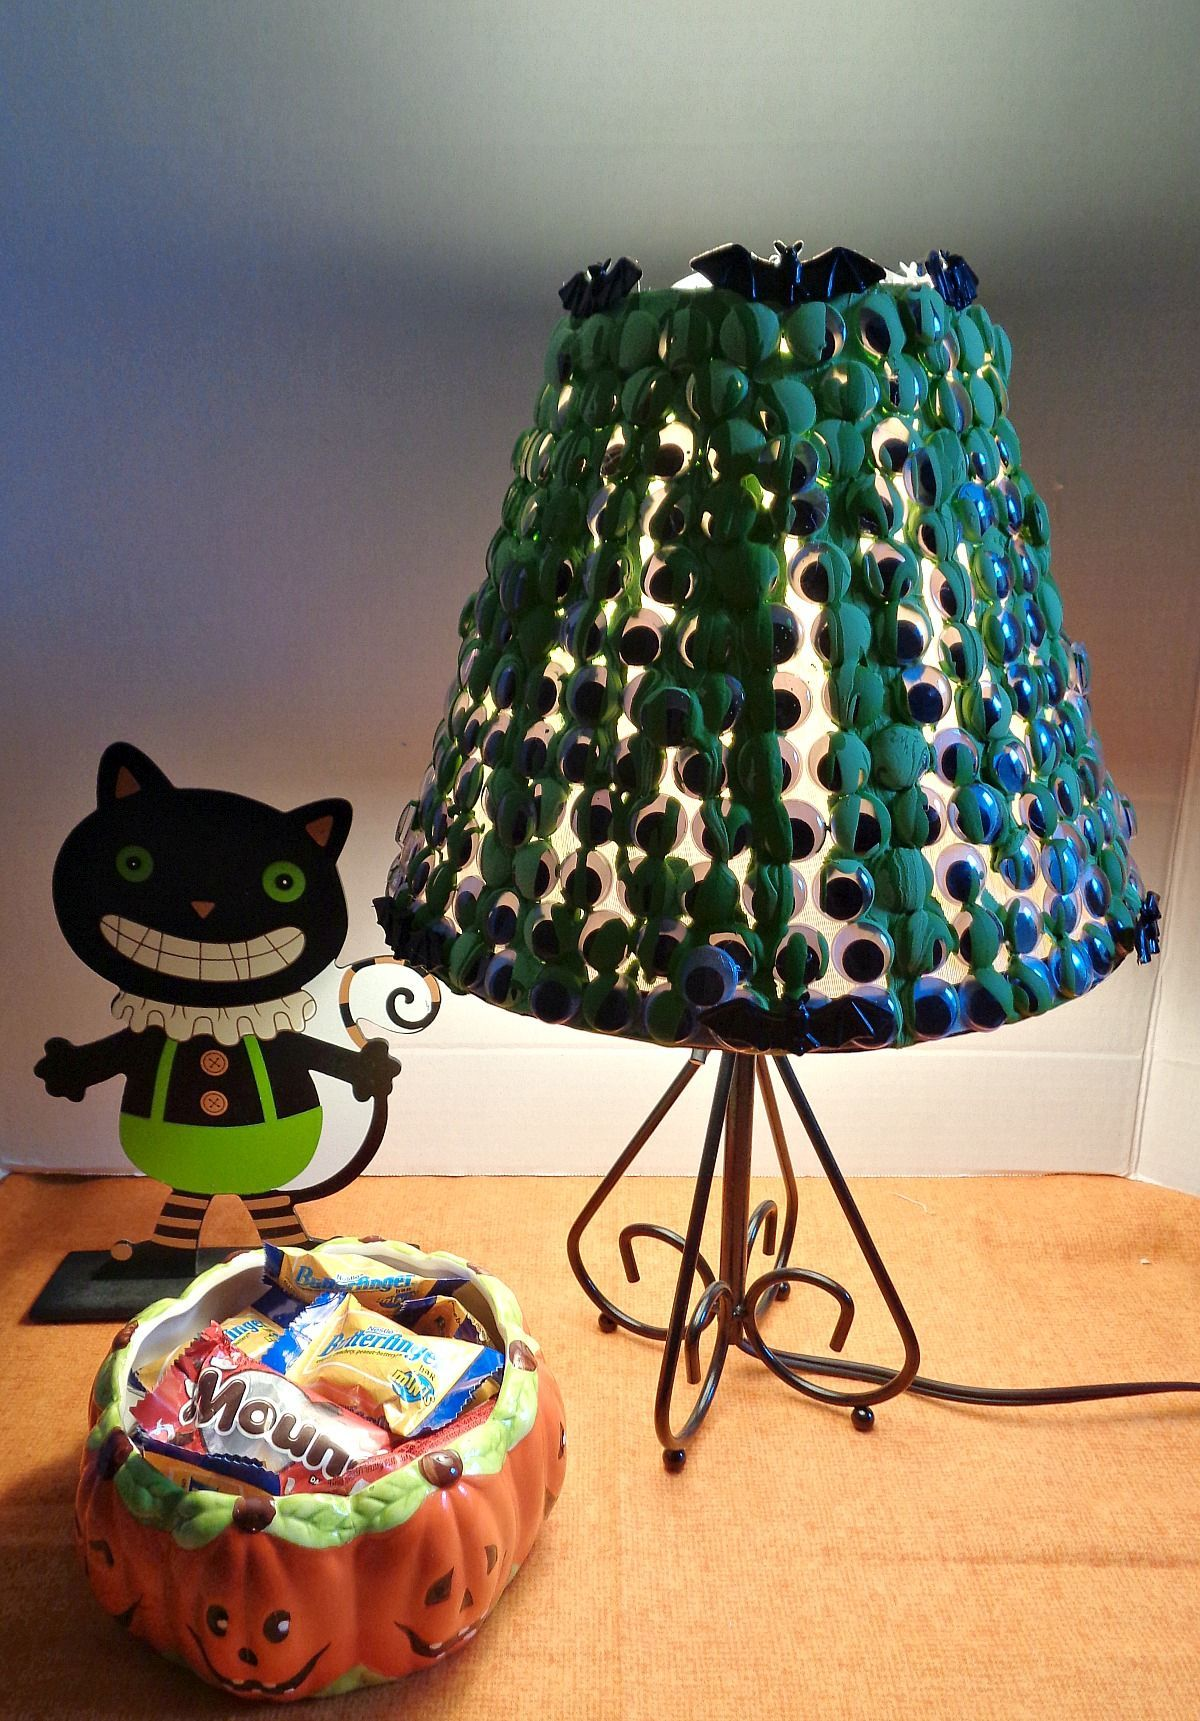 Diy lampshade ideas the best and the brightest diyvila a diy lampshade is one of the items with great potential for customization the design possibilities are pretty much endless solutioingenieria Gallery